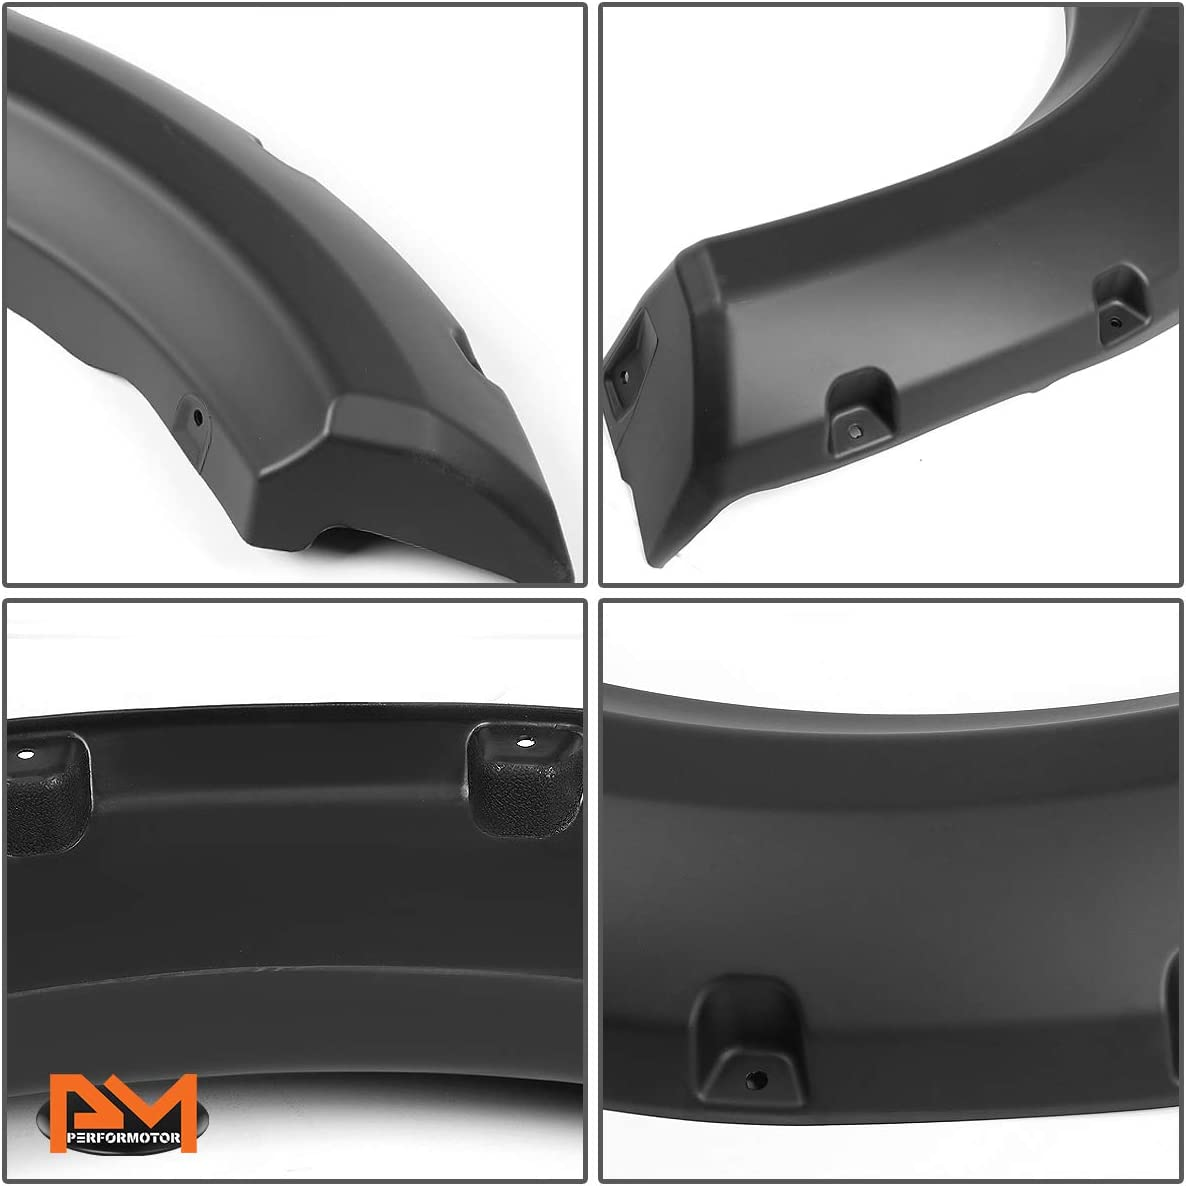 Textured Pocket-Rivet Wheel Fender Flare Compatible with Ford F150 Styleside Bed 09-14